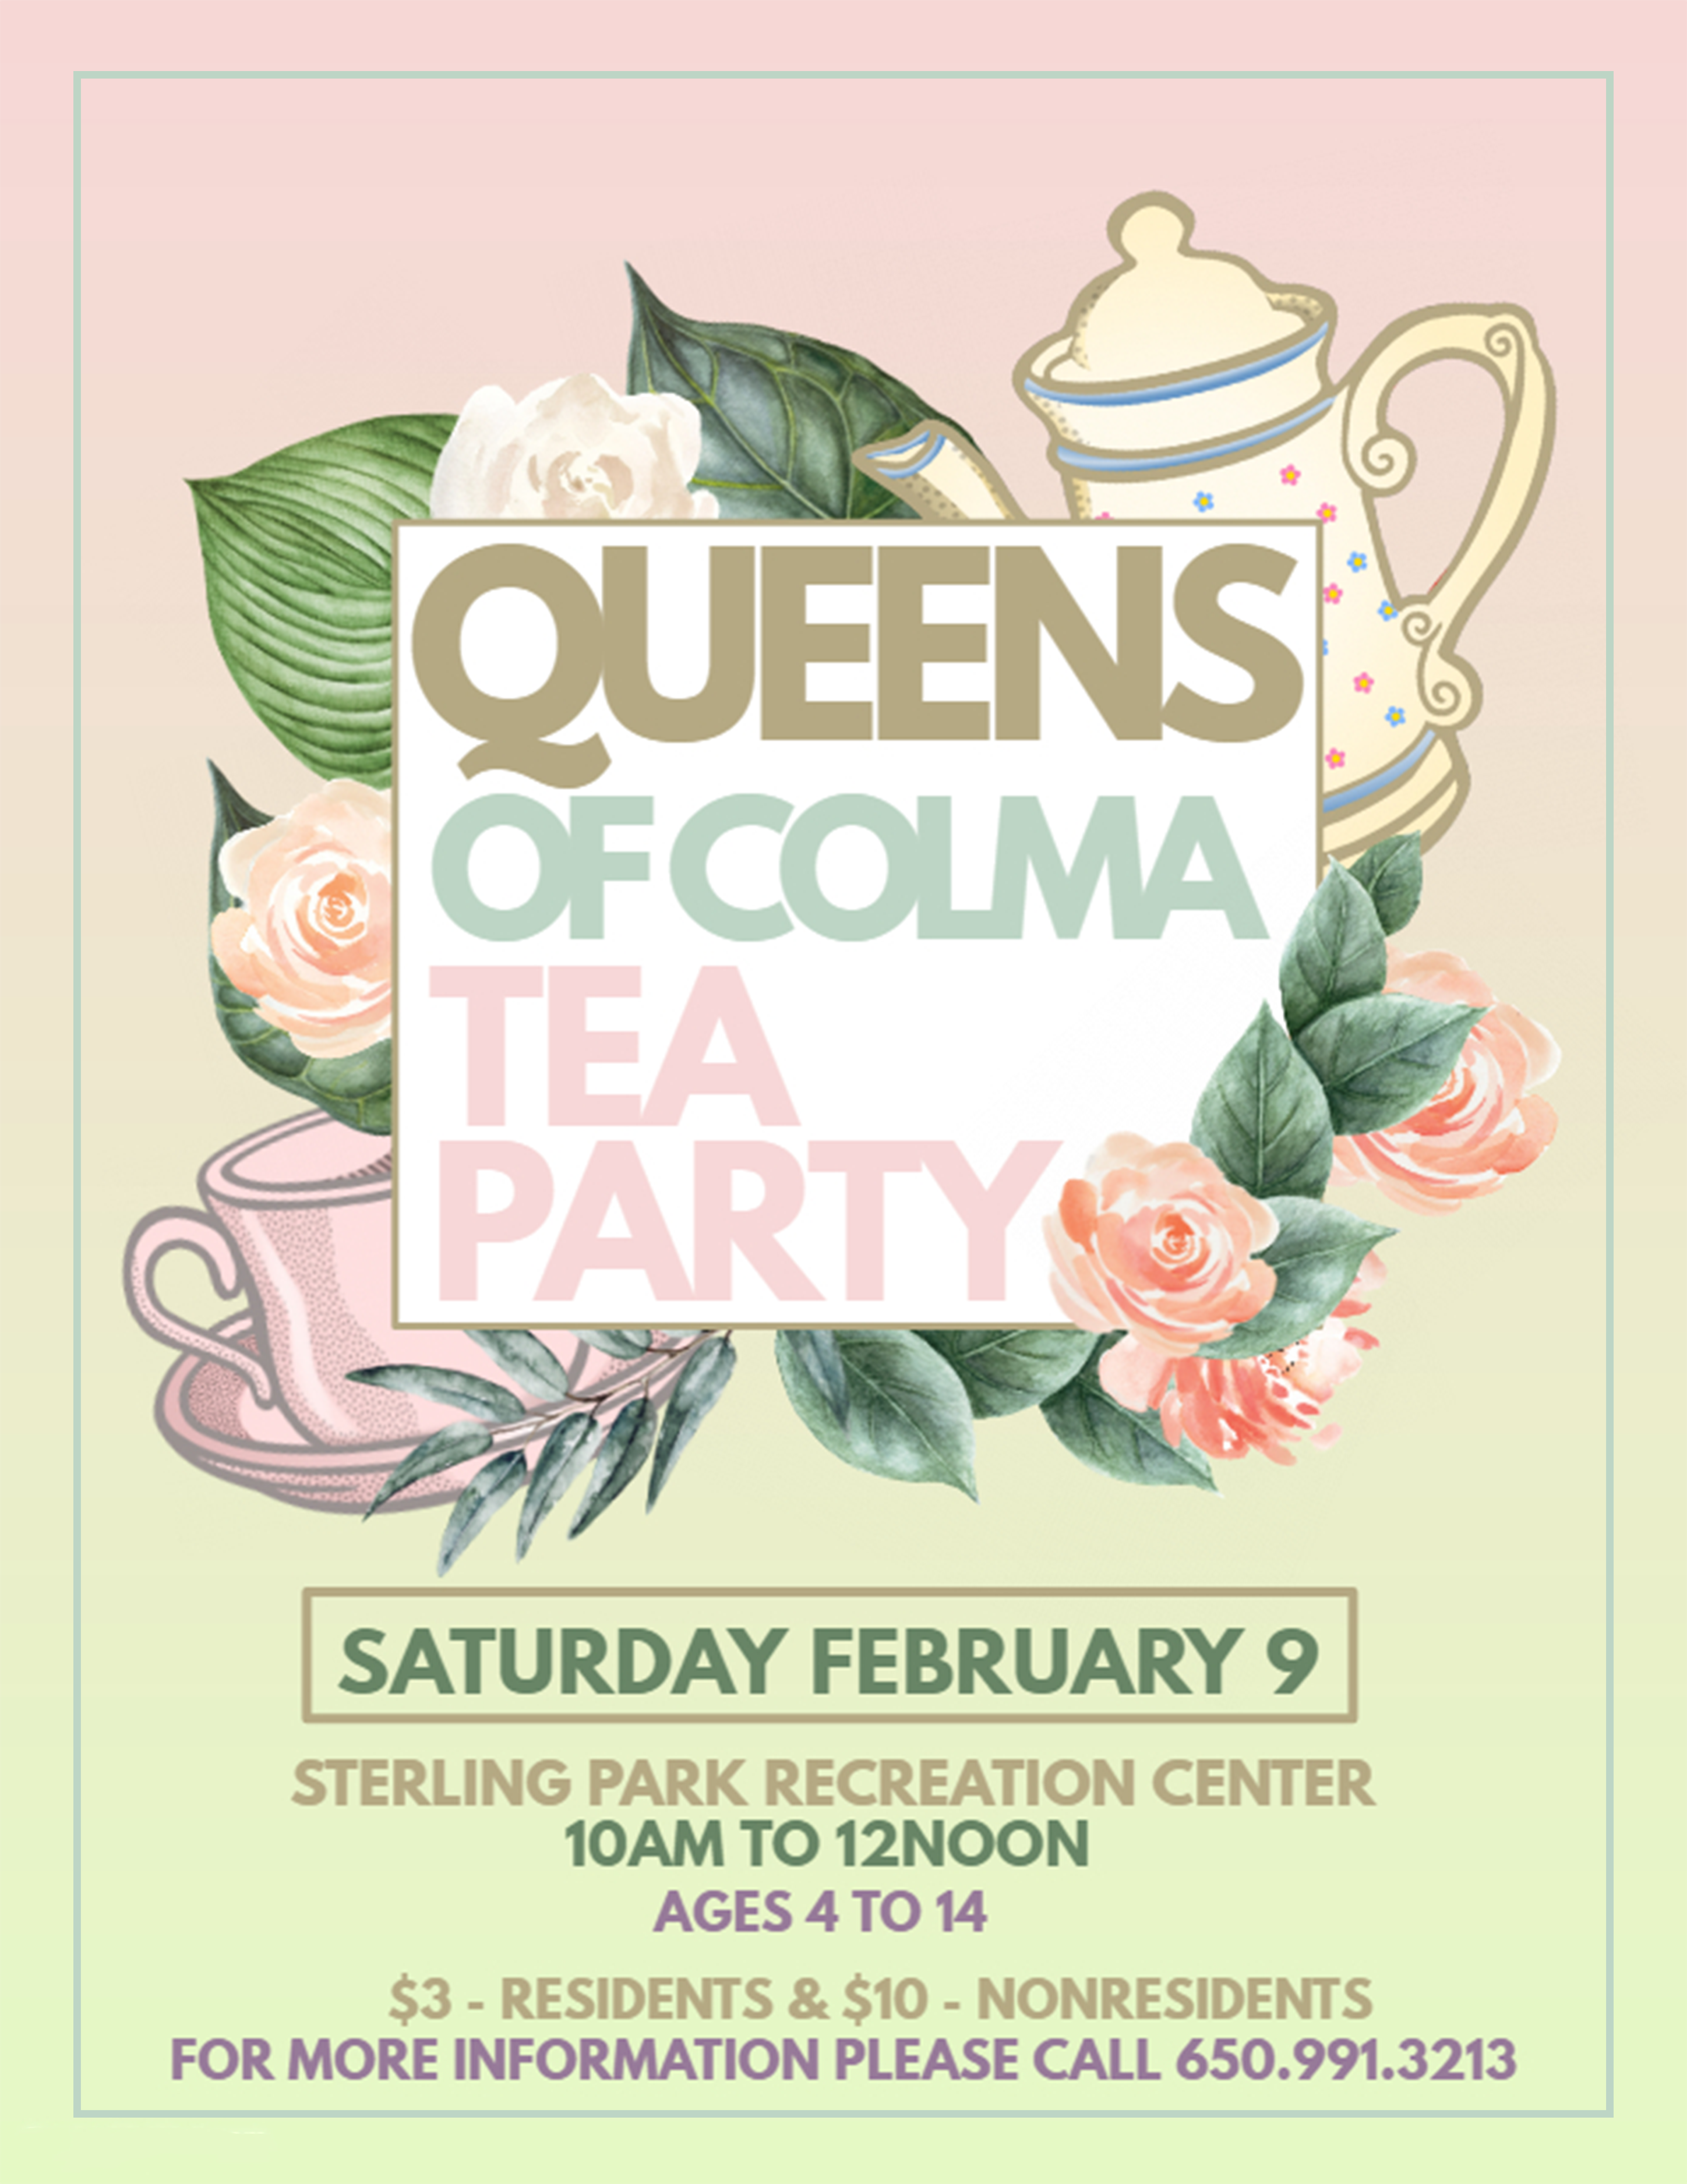 Come Join The Ladies Of Our Colma Recreation Staff For A Tea Party At Sterling Park We Will Have Breakfast Pastries Crafts And Games